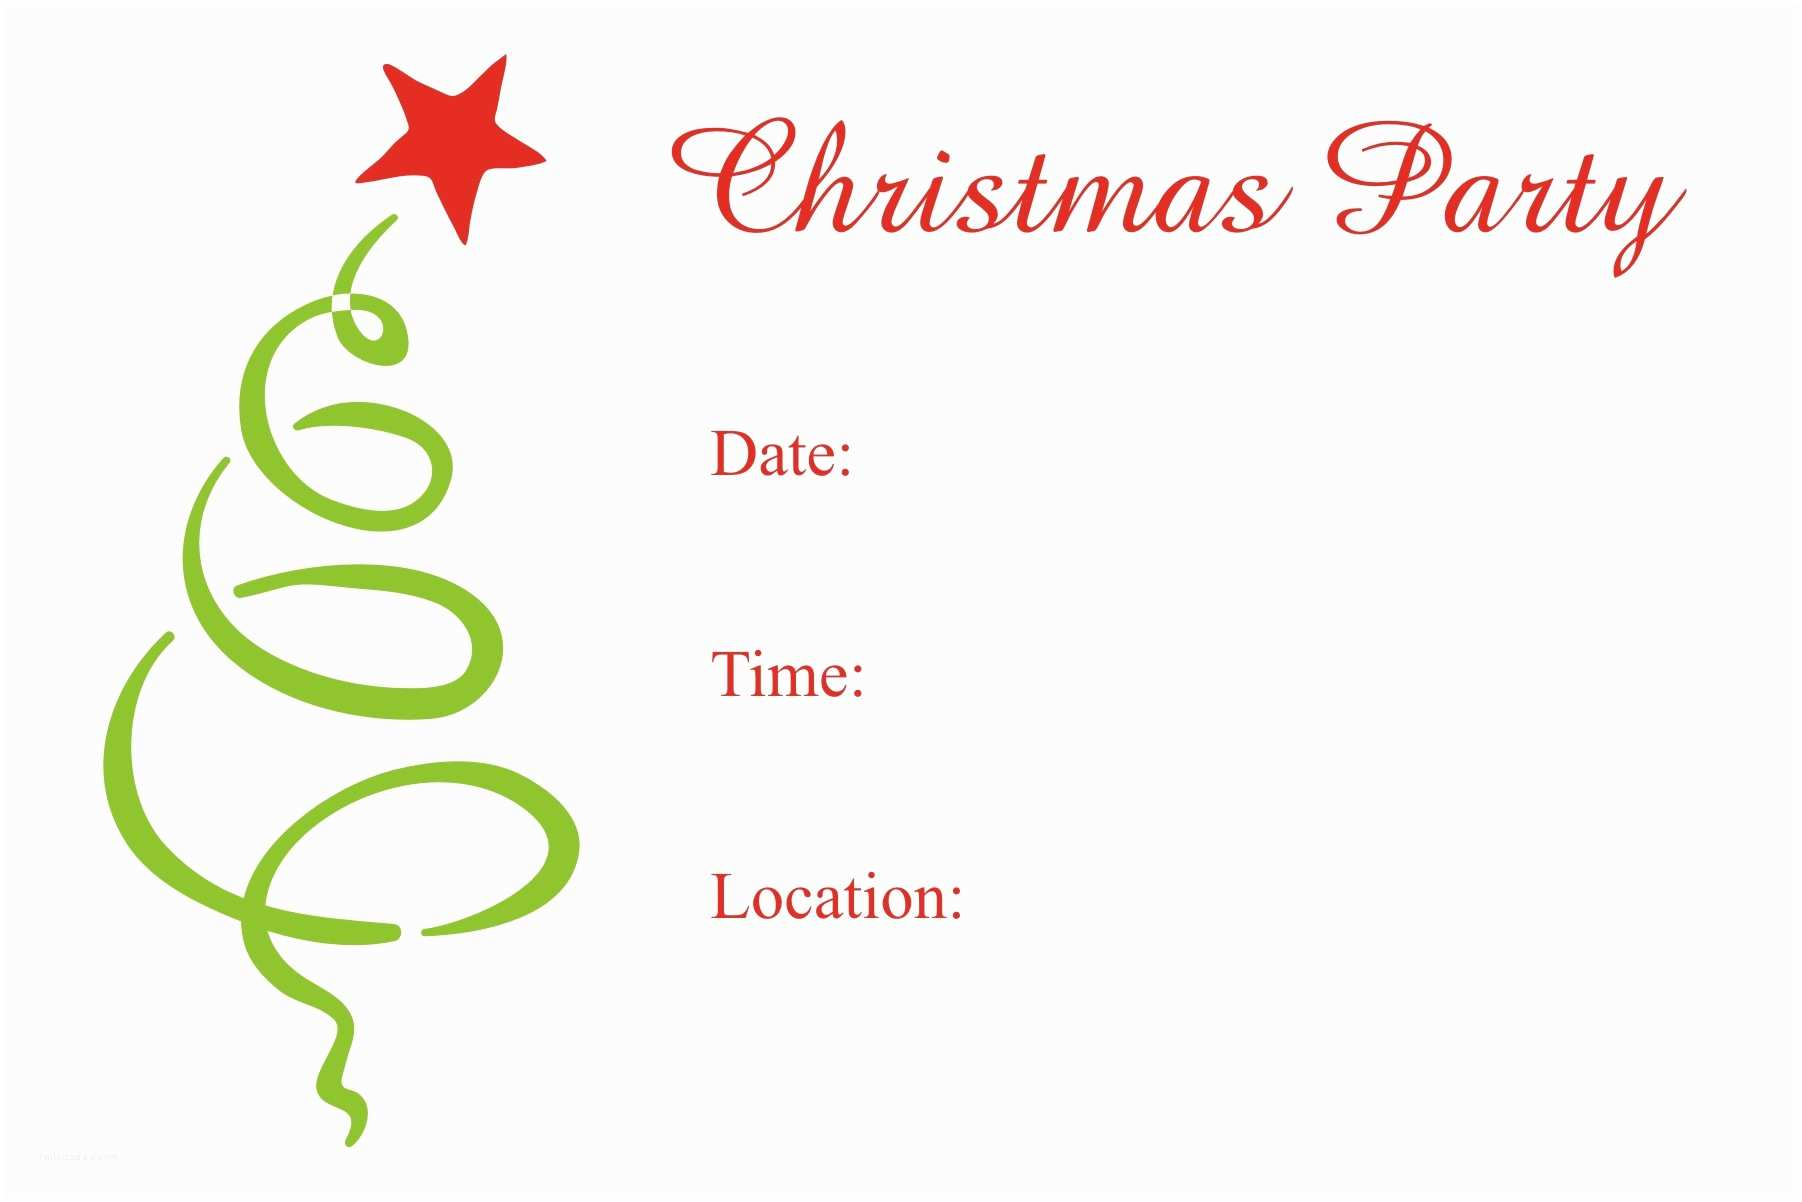 Christmas Party Invitations Free Printable Christmas Party Invitations Templates